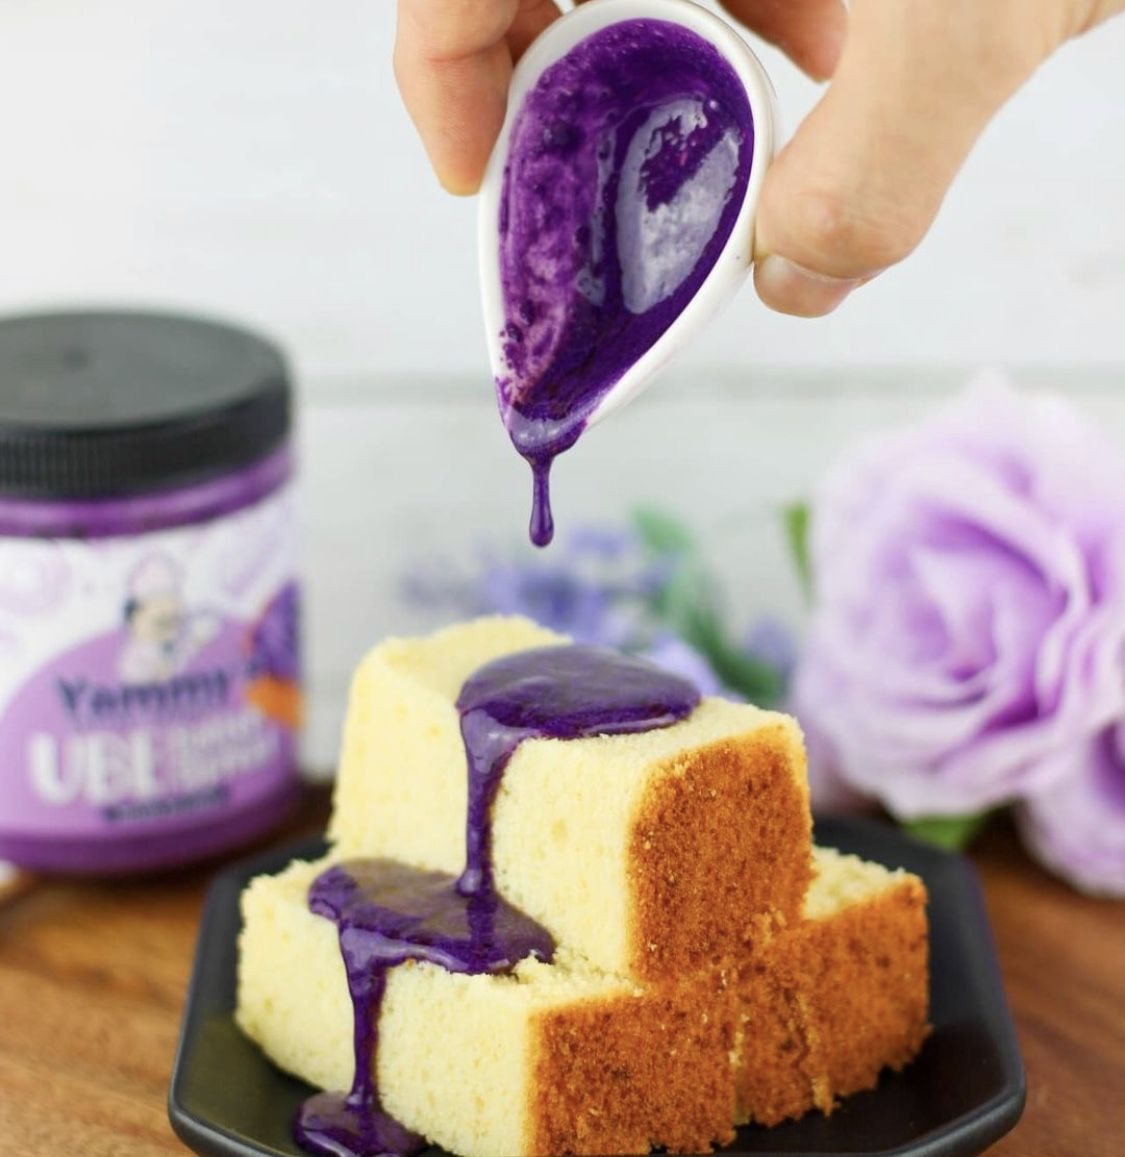 Ube butter from Yammy's